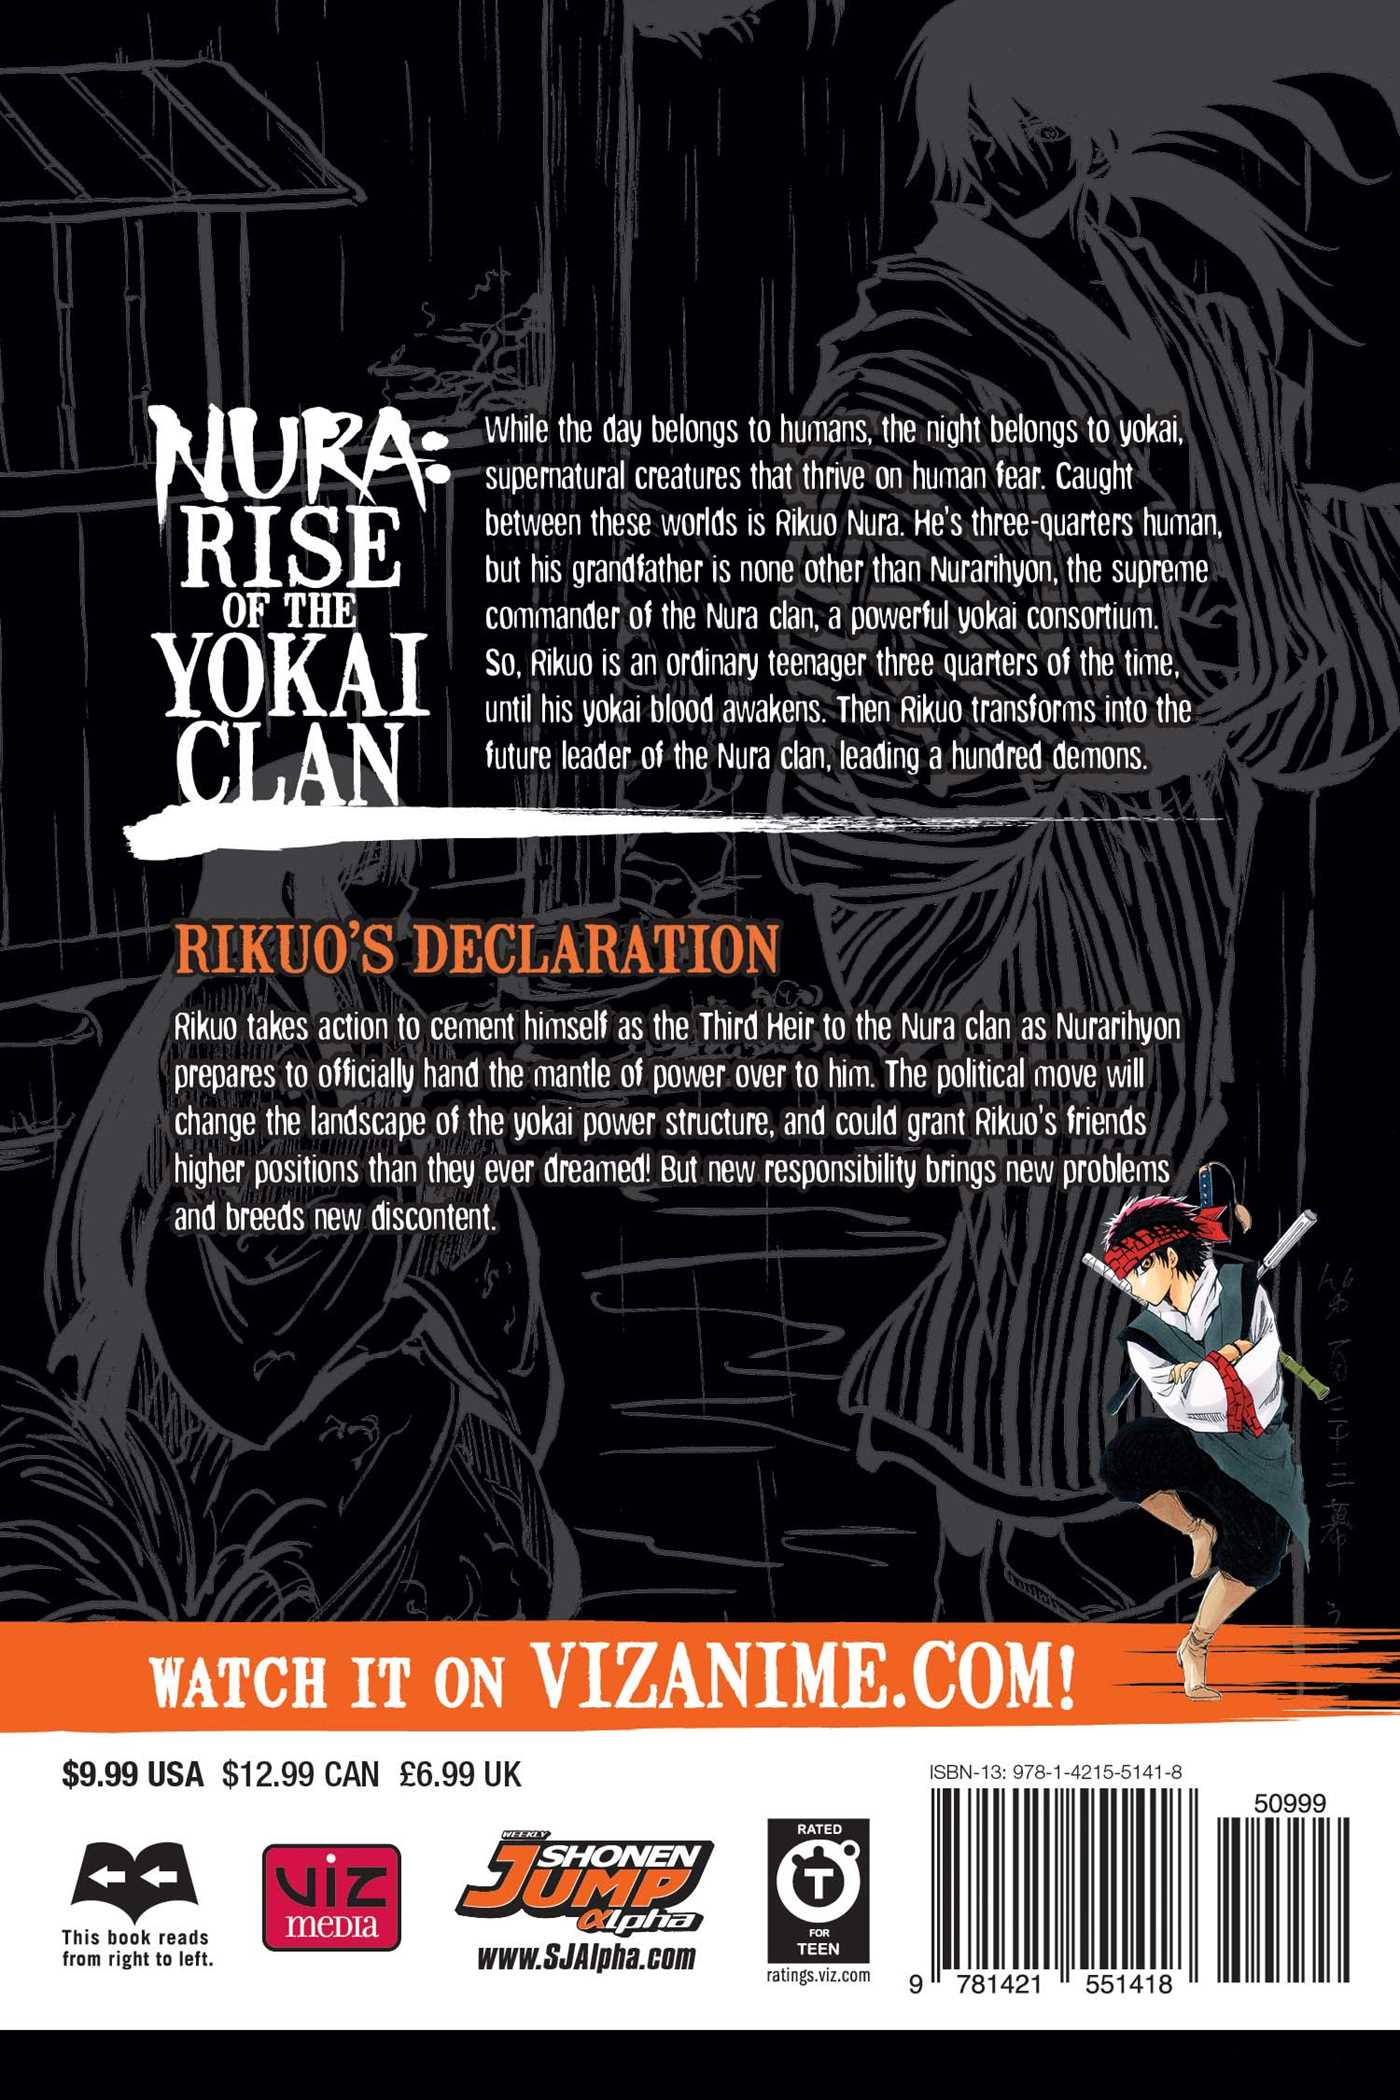 Nura rise of the yokai clan vol 16 9781421551418 hr back